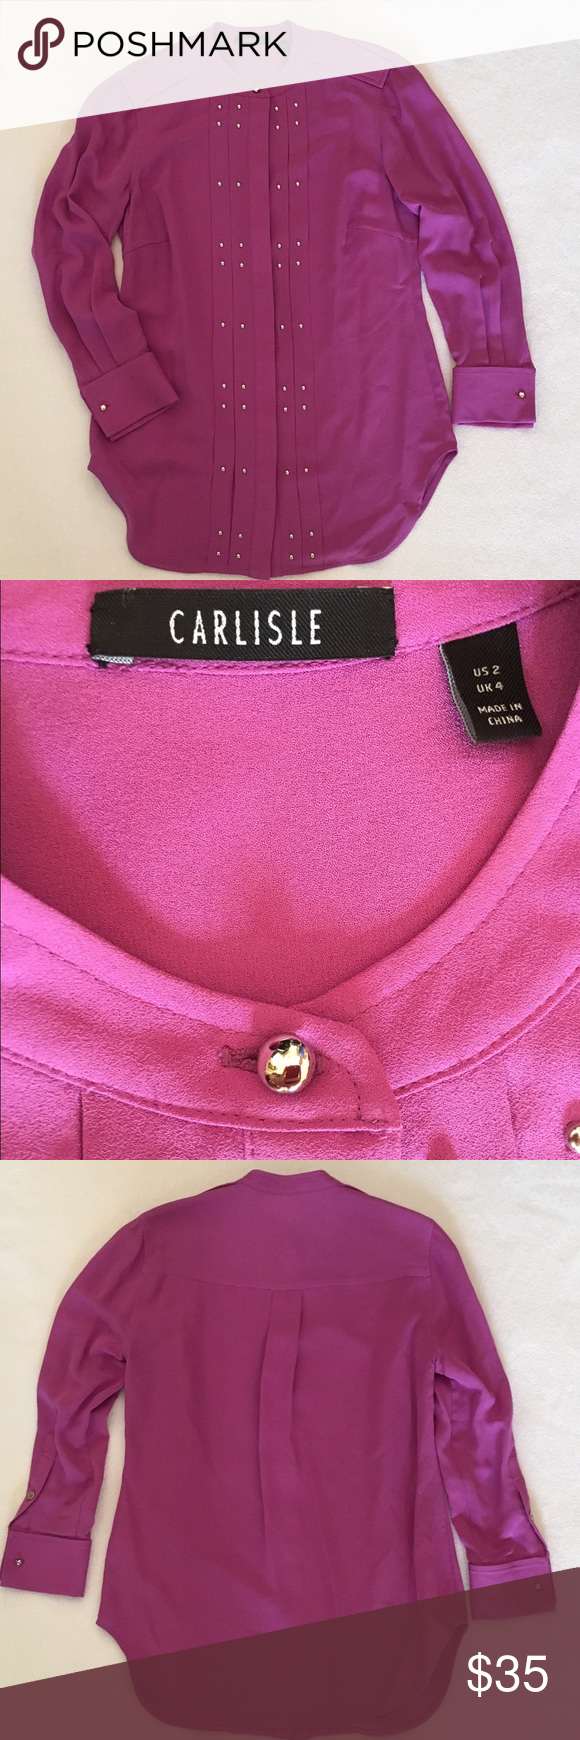 Carlisle Silk Blouse with beautiful detailing Carlisle Silk Blouse with beautiful detailing Carlisle Tops Blouses